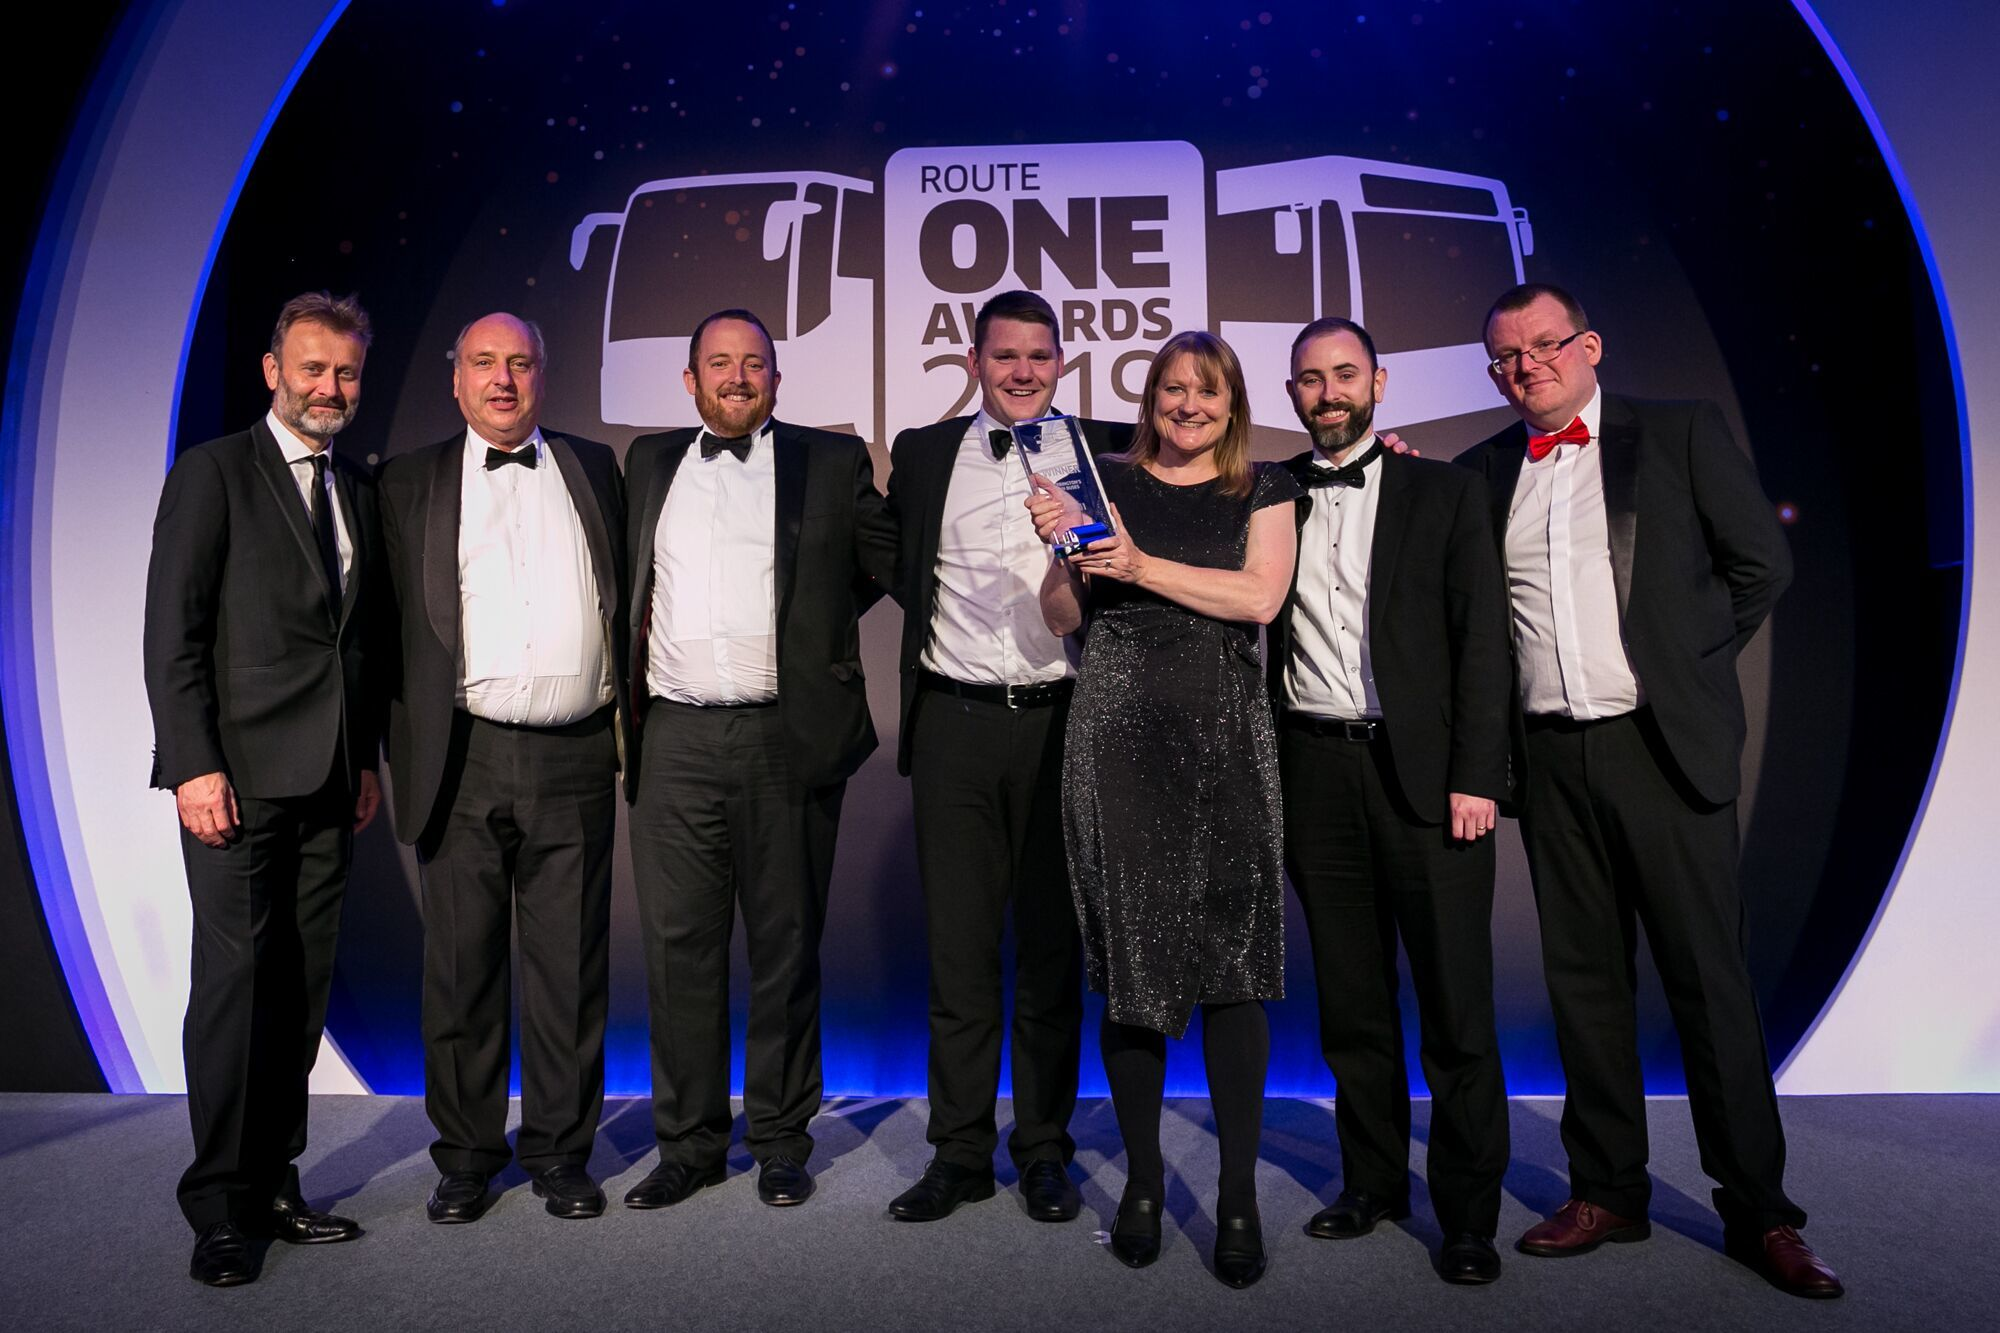 Warrington's Own Buses wins at Route One Awards 2019